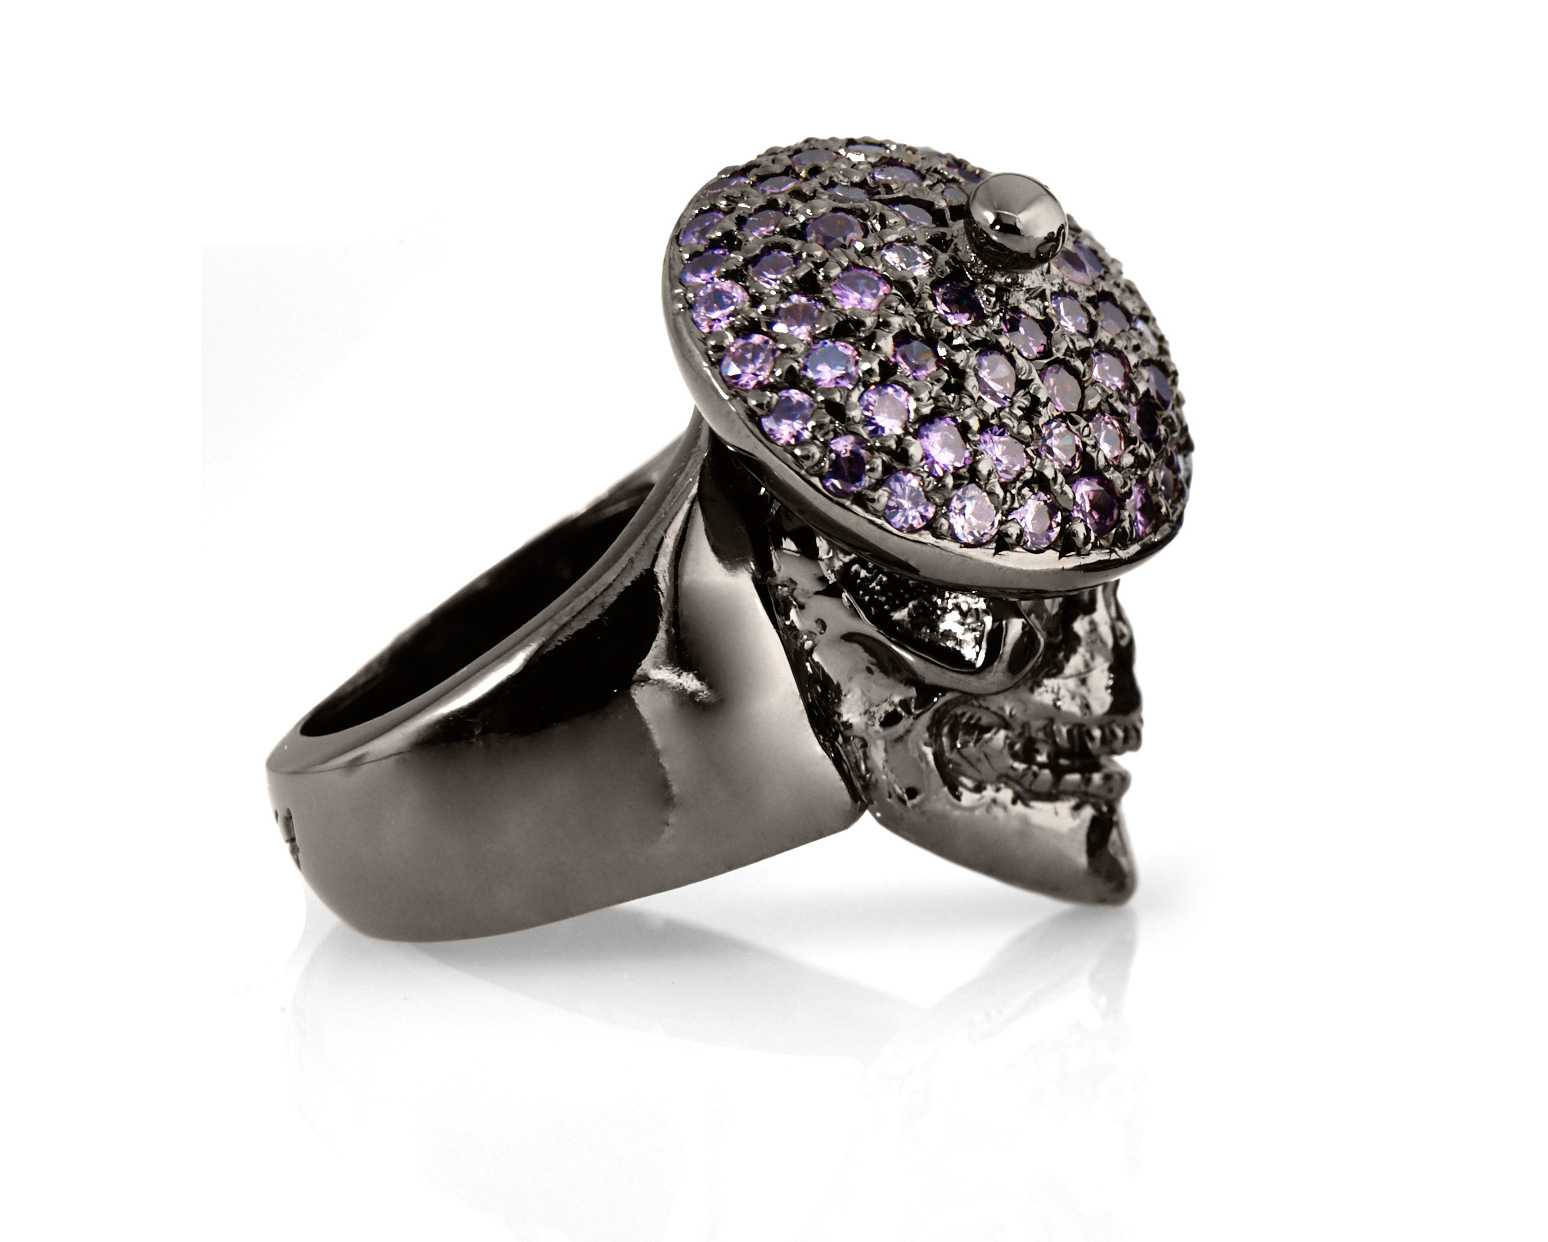 RG104BK-PUR The Artist Skull Ring in Rhodium Plated Sterling Silver with Purple Stones (Black Collection), designed by Steve Soffa